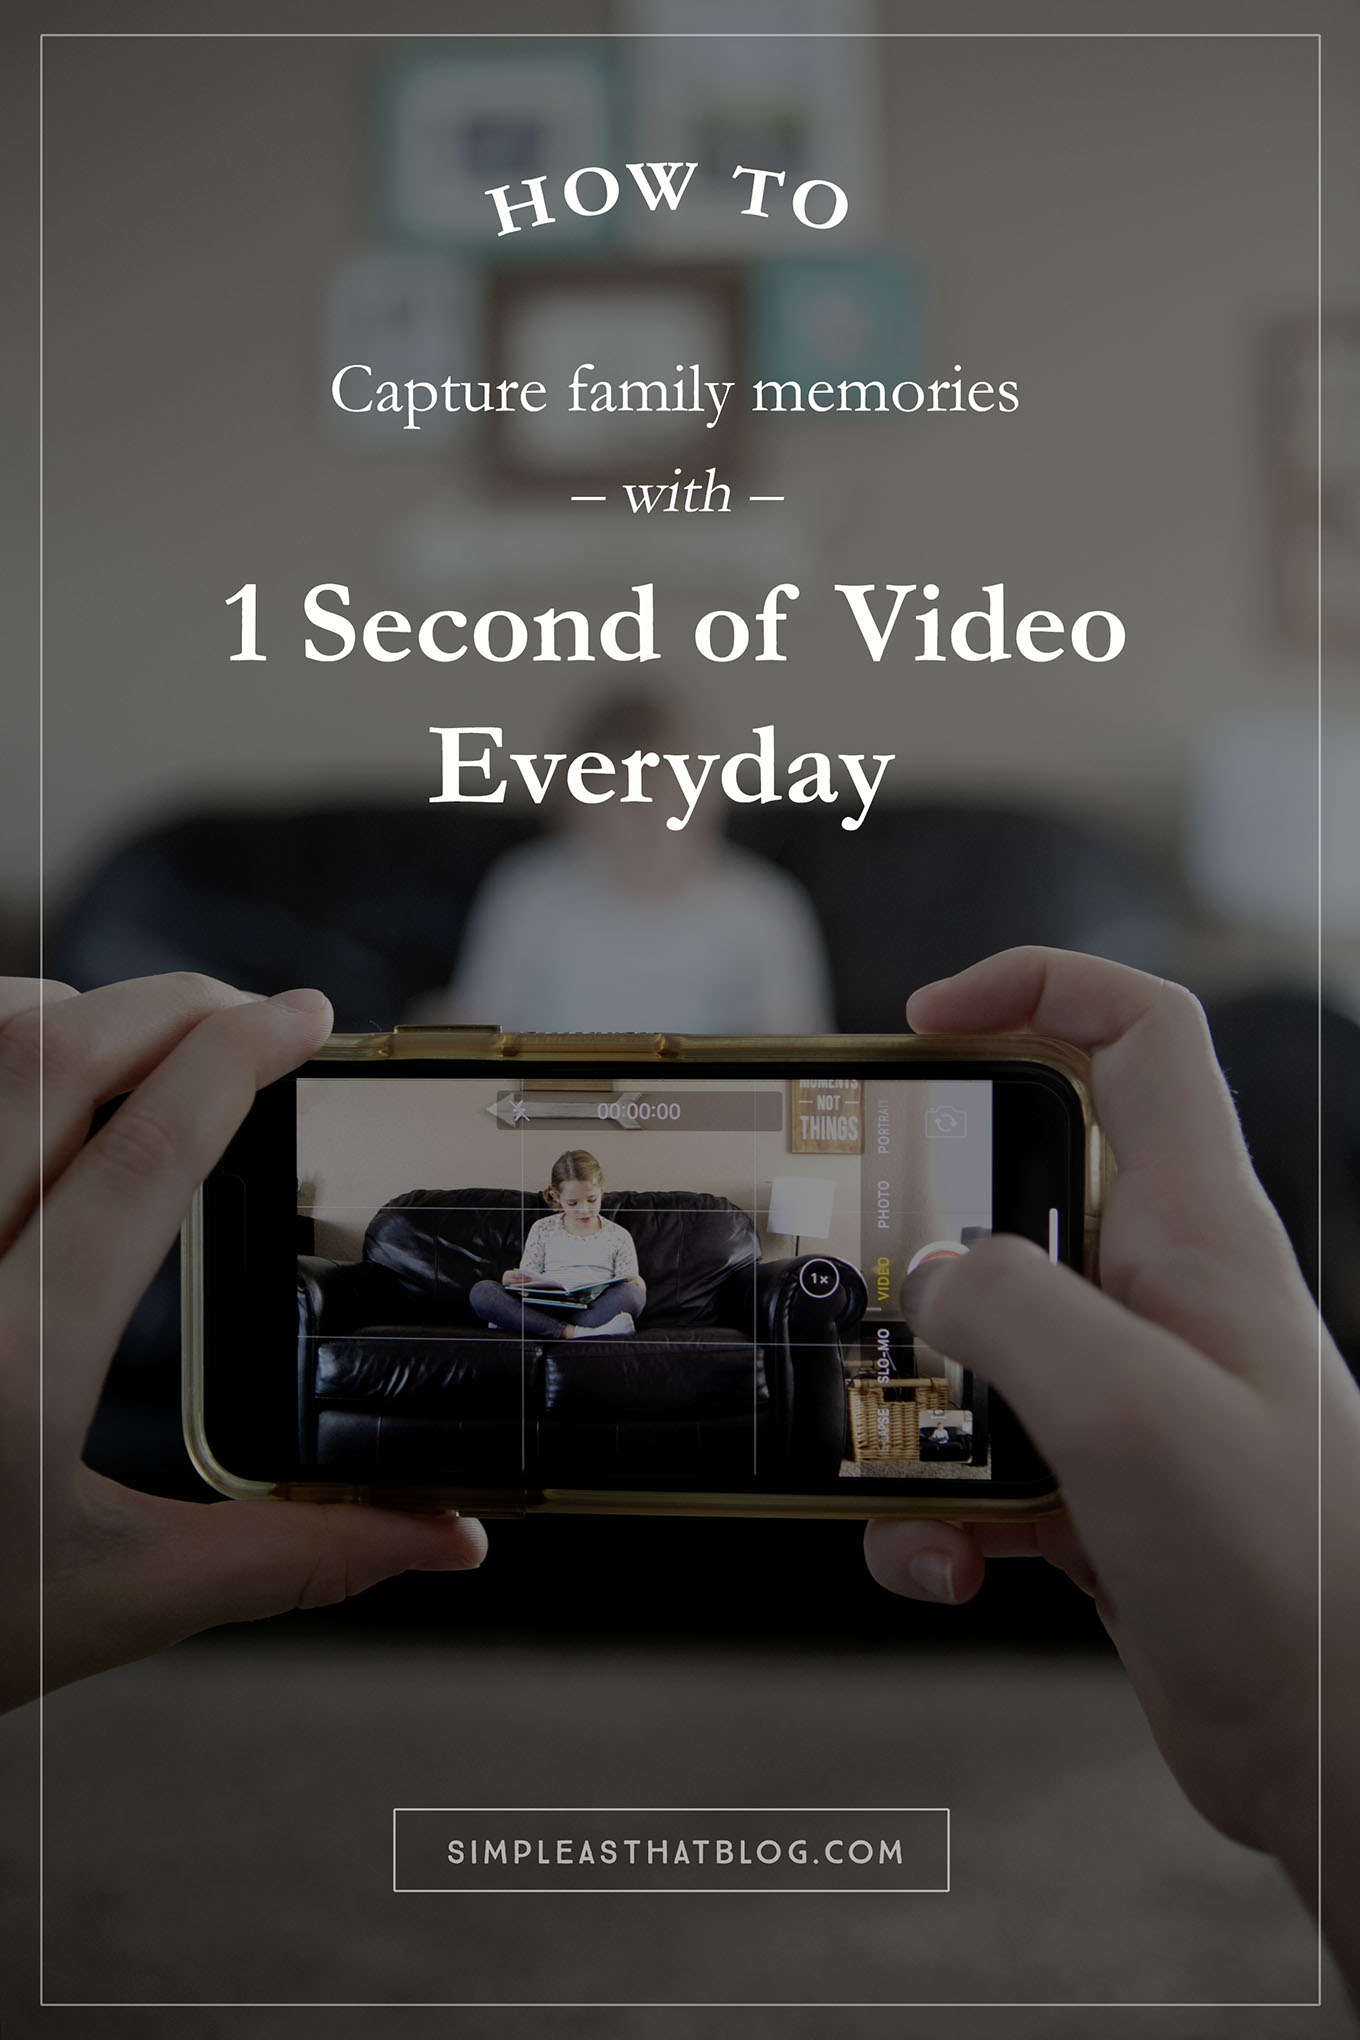 1 Second Everyday Video Project – Capture magical, everyday family memories with 1 second of video everyday! It really is the little things that matter most.